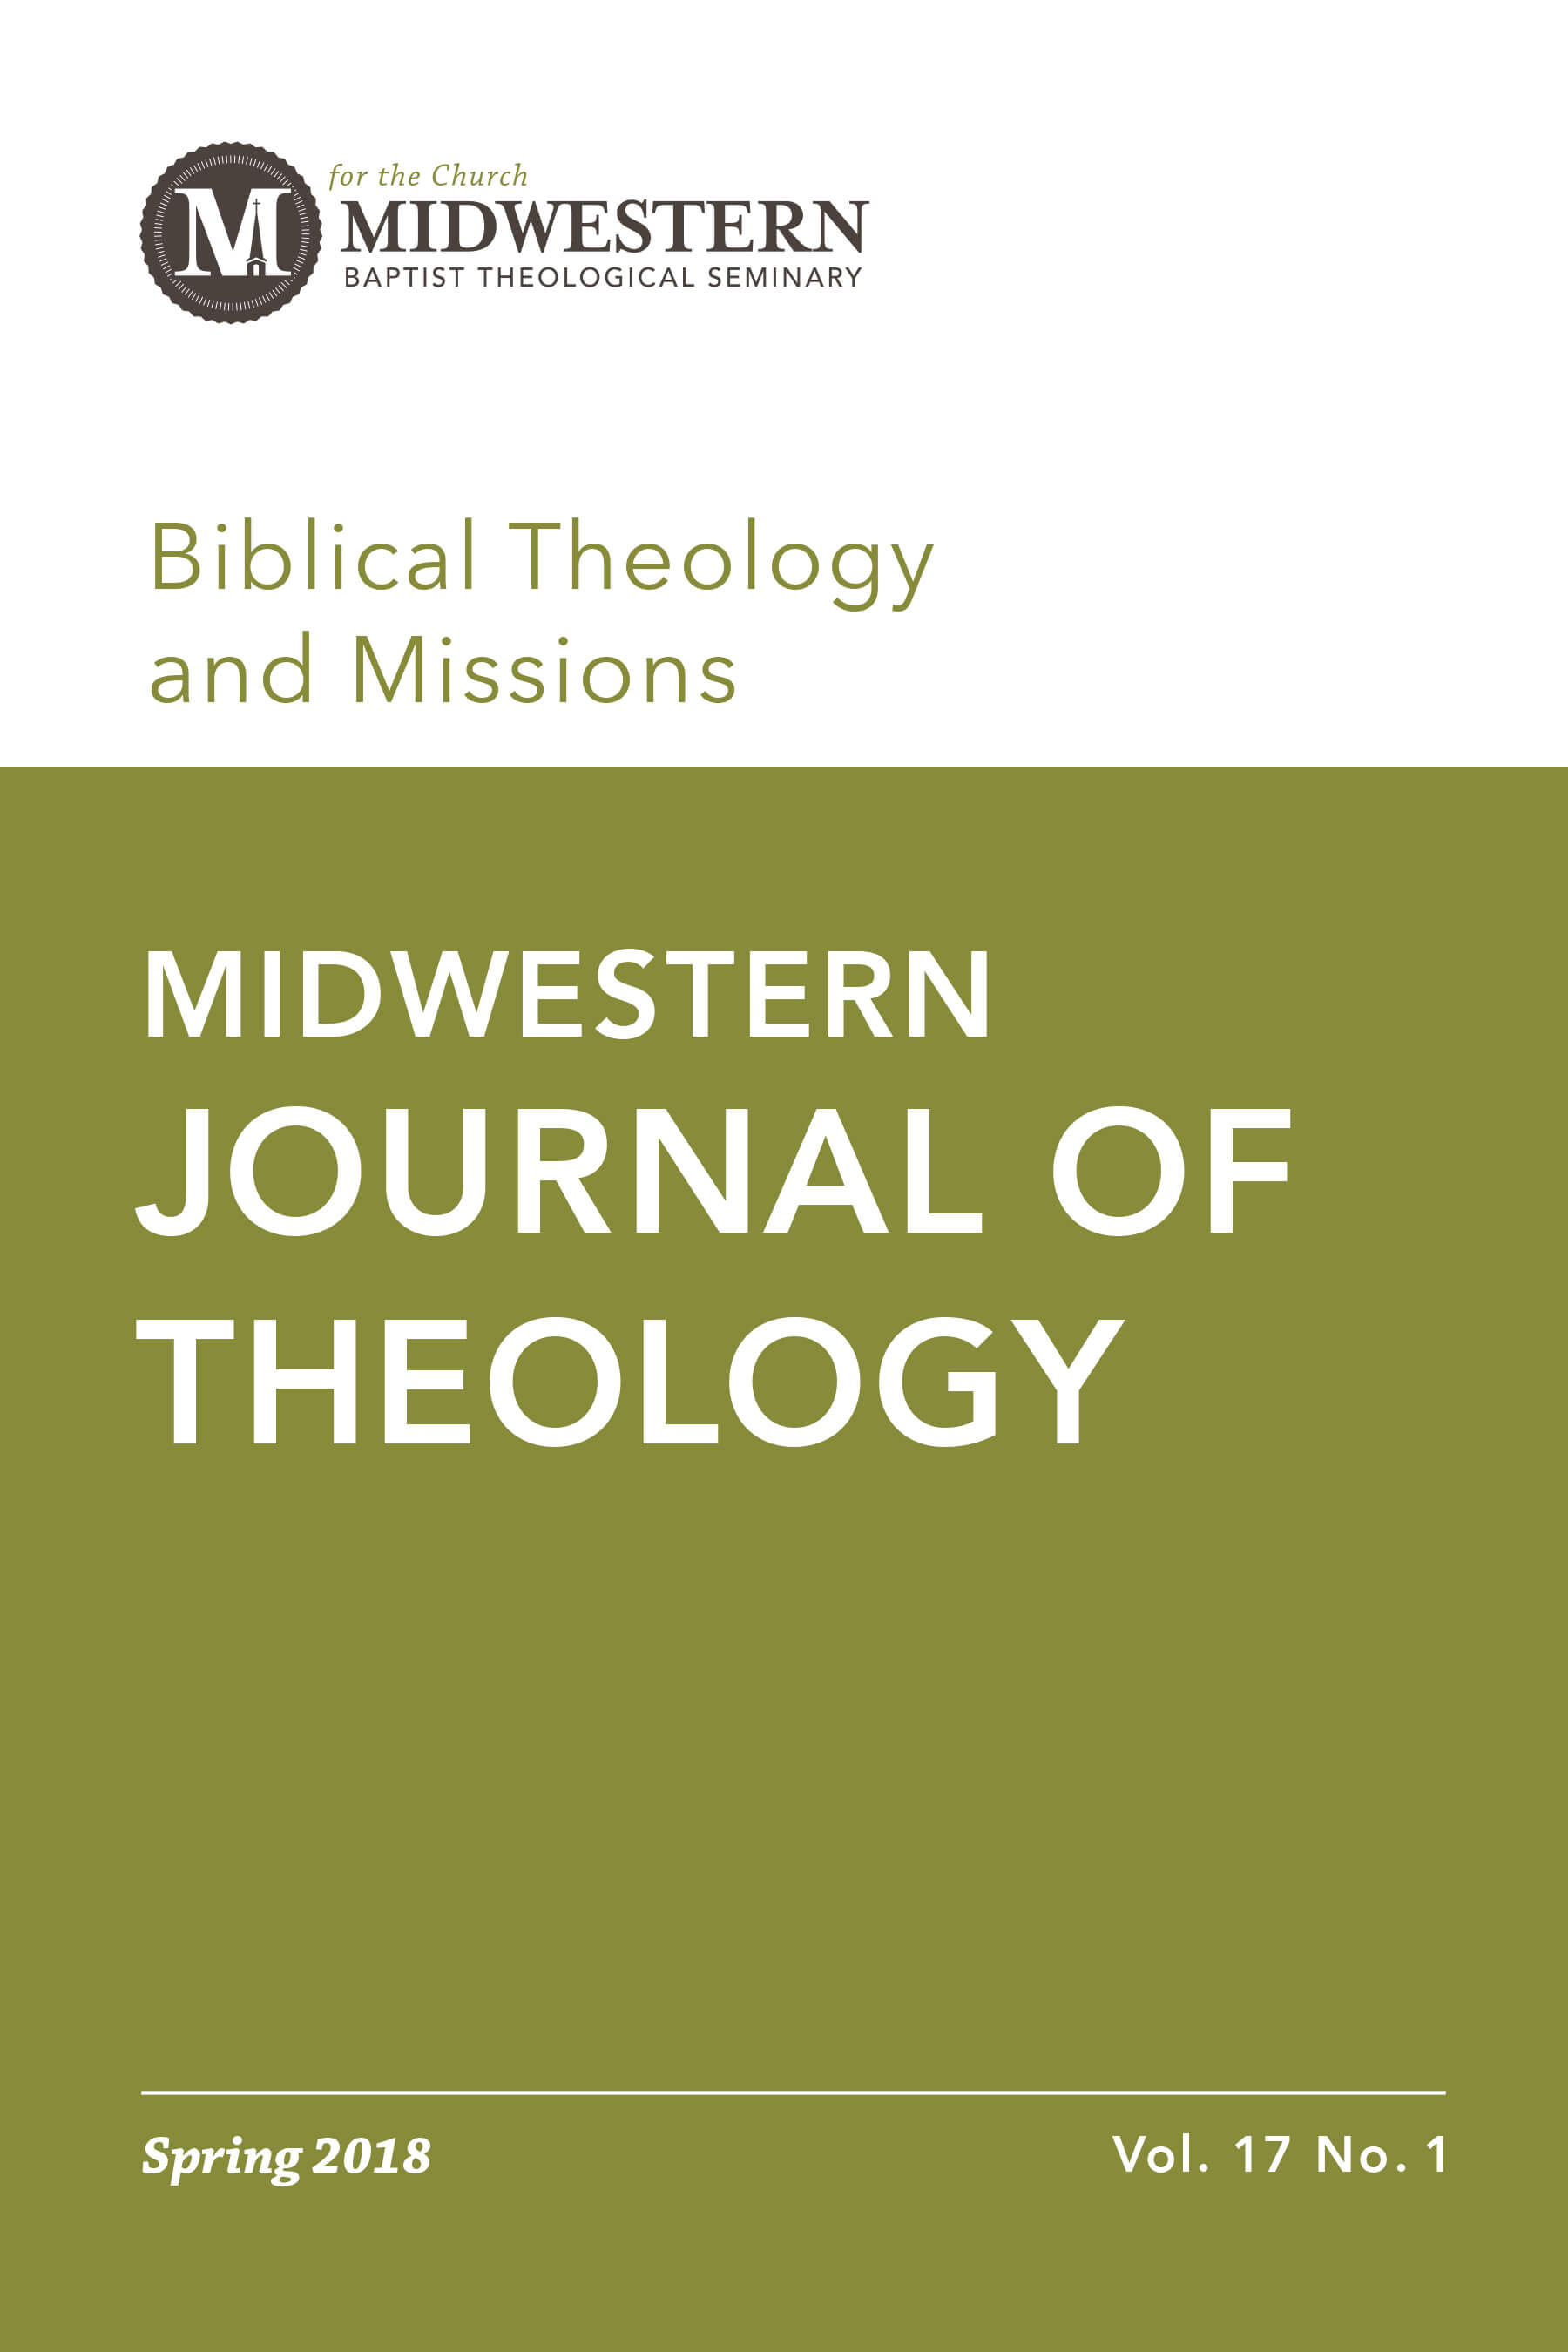 Spring 2018 Midwestern Journal of Theology